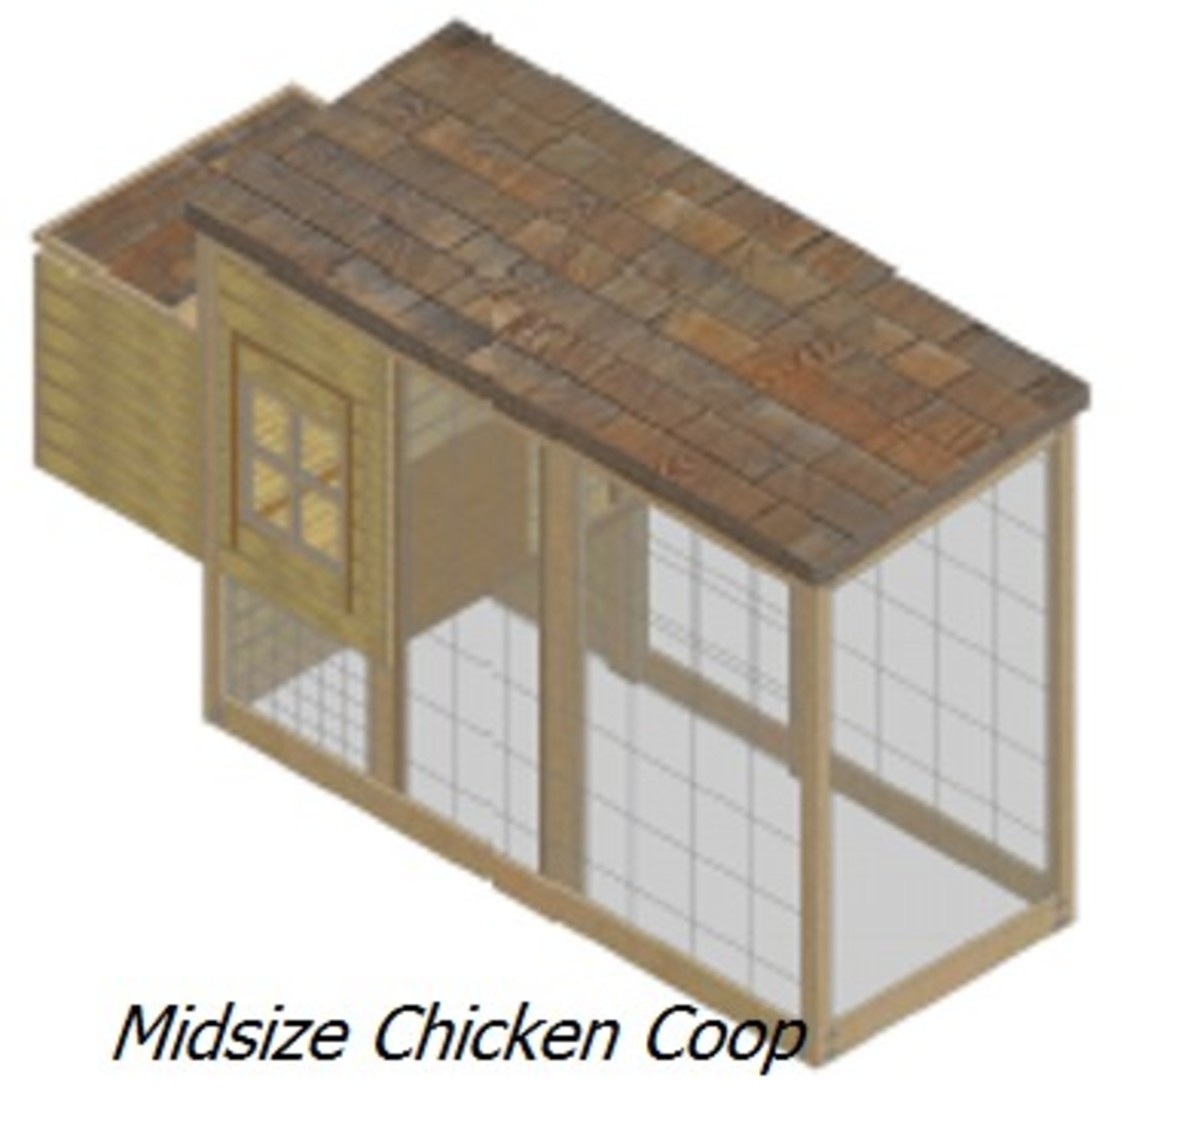 Midsize Chicken Coop Plan